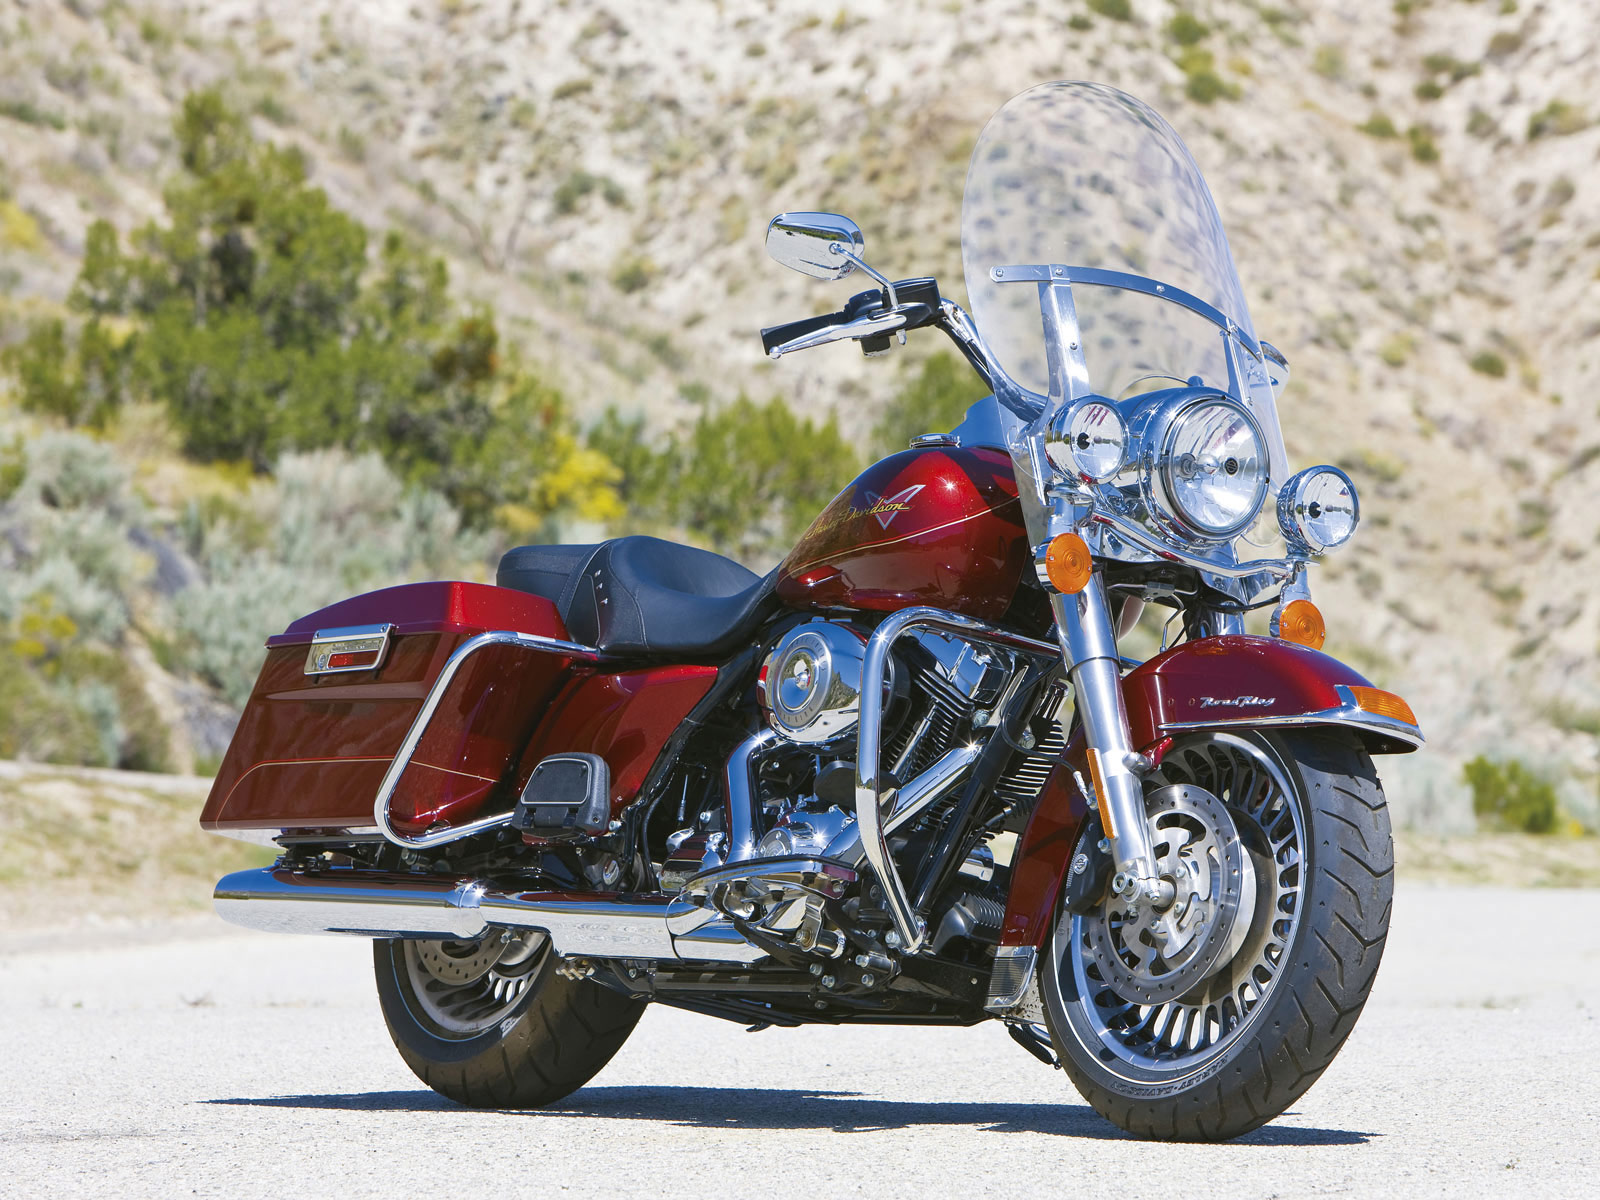 Pleasant Flhr Road King Accident Lawyers Info 2009 Harley Davidson Alphanode Cool Chair Designs And Ideas Alphanodeonline